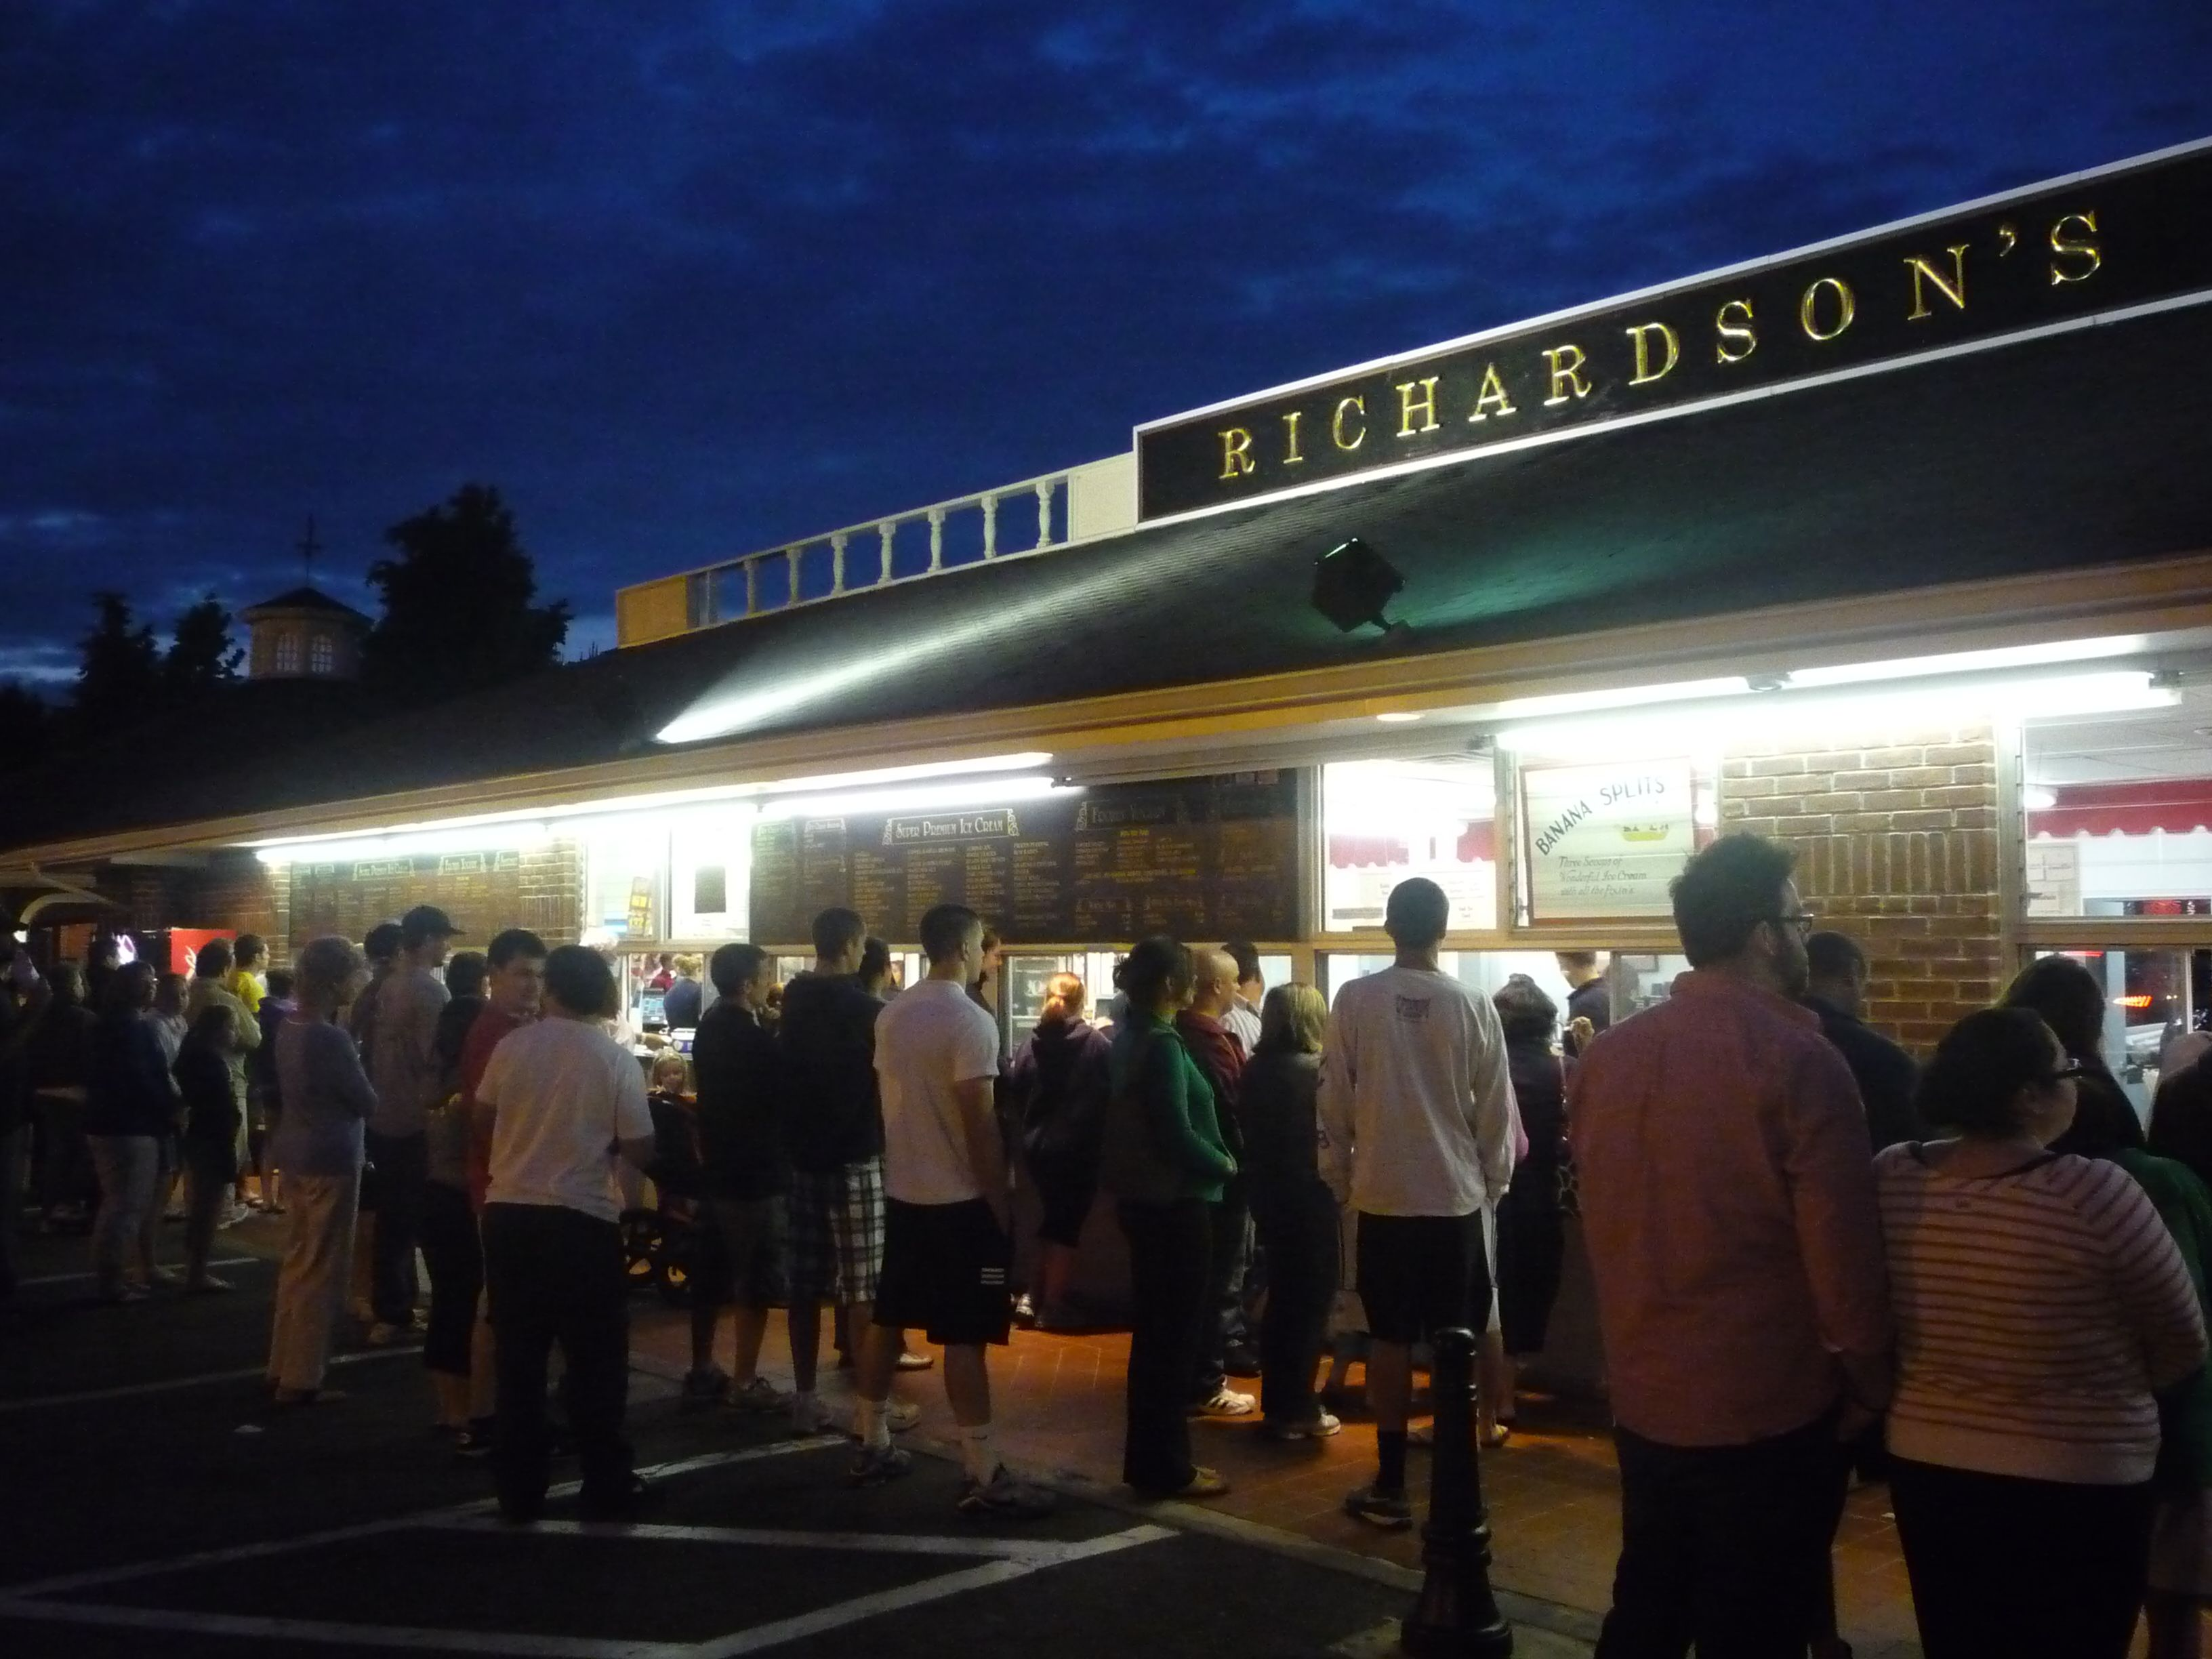 Richardson S In Middleton Ma Is The Best Ice Cream And Frozen Yogurt In New England By 1695 David Richardson Mov New England Ice Cream Stand Cheap Travel